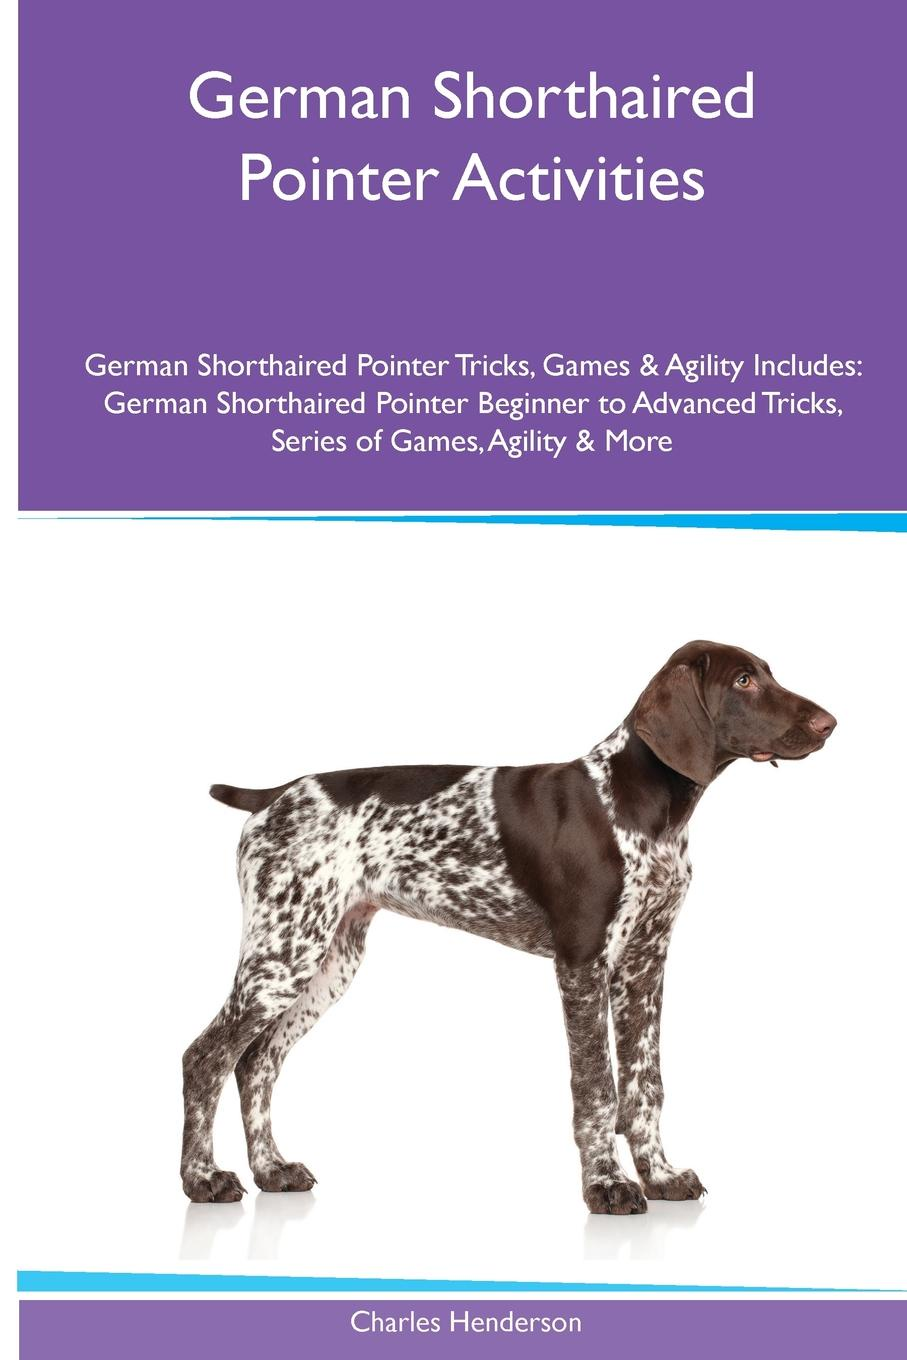 Фото - Charles Henderson German Shorthaired Pointer Activities German Shorthaired Pointer Tricks, Games & Agility. Includes. German Shorthaired Pointer Beginner to Advanced Tricks, Series of Games, Agility and More the penguin german phrasebook